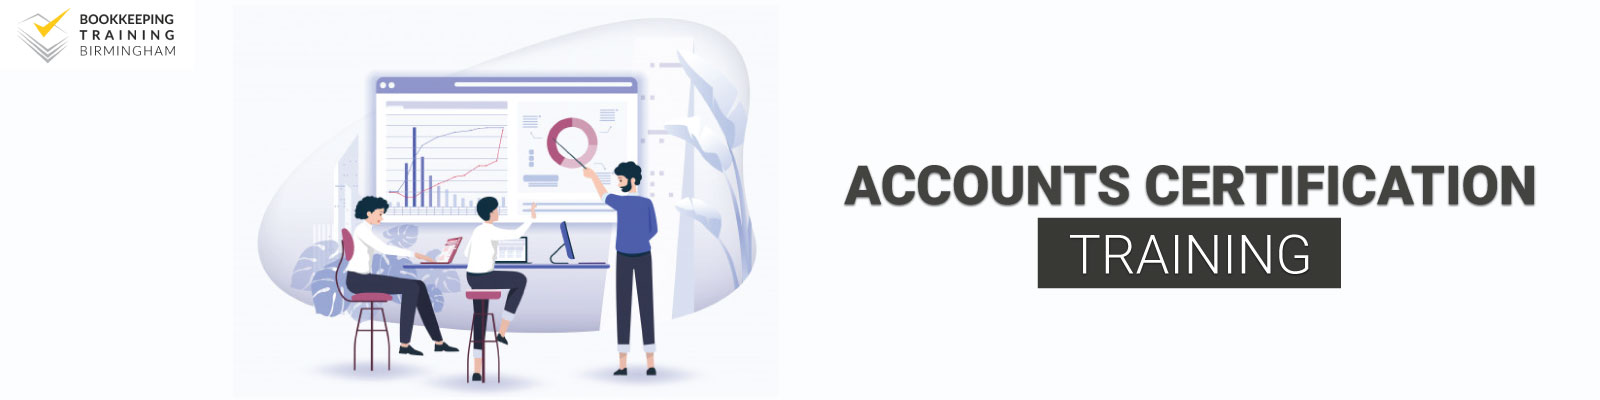 accounts-certification-training